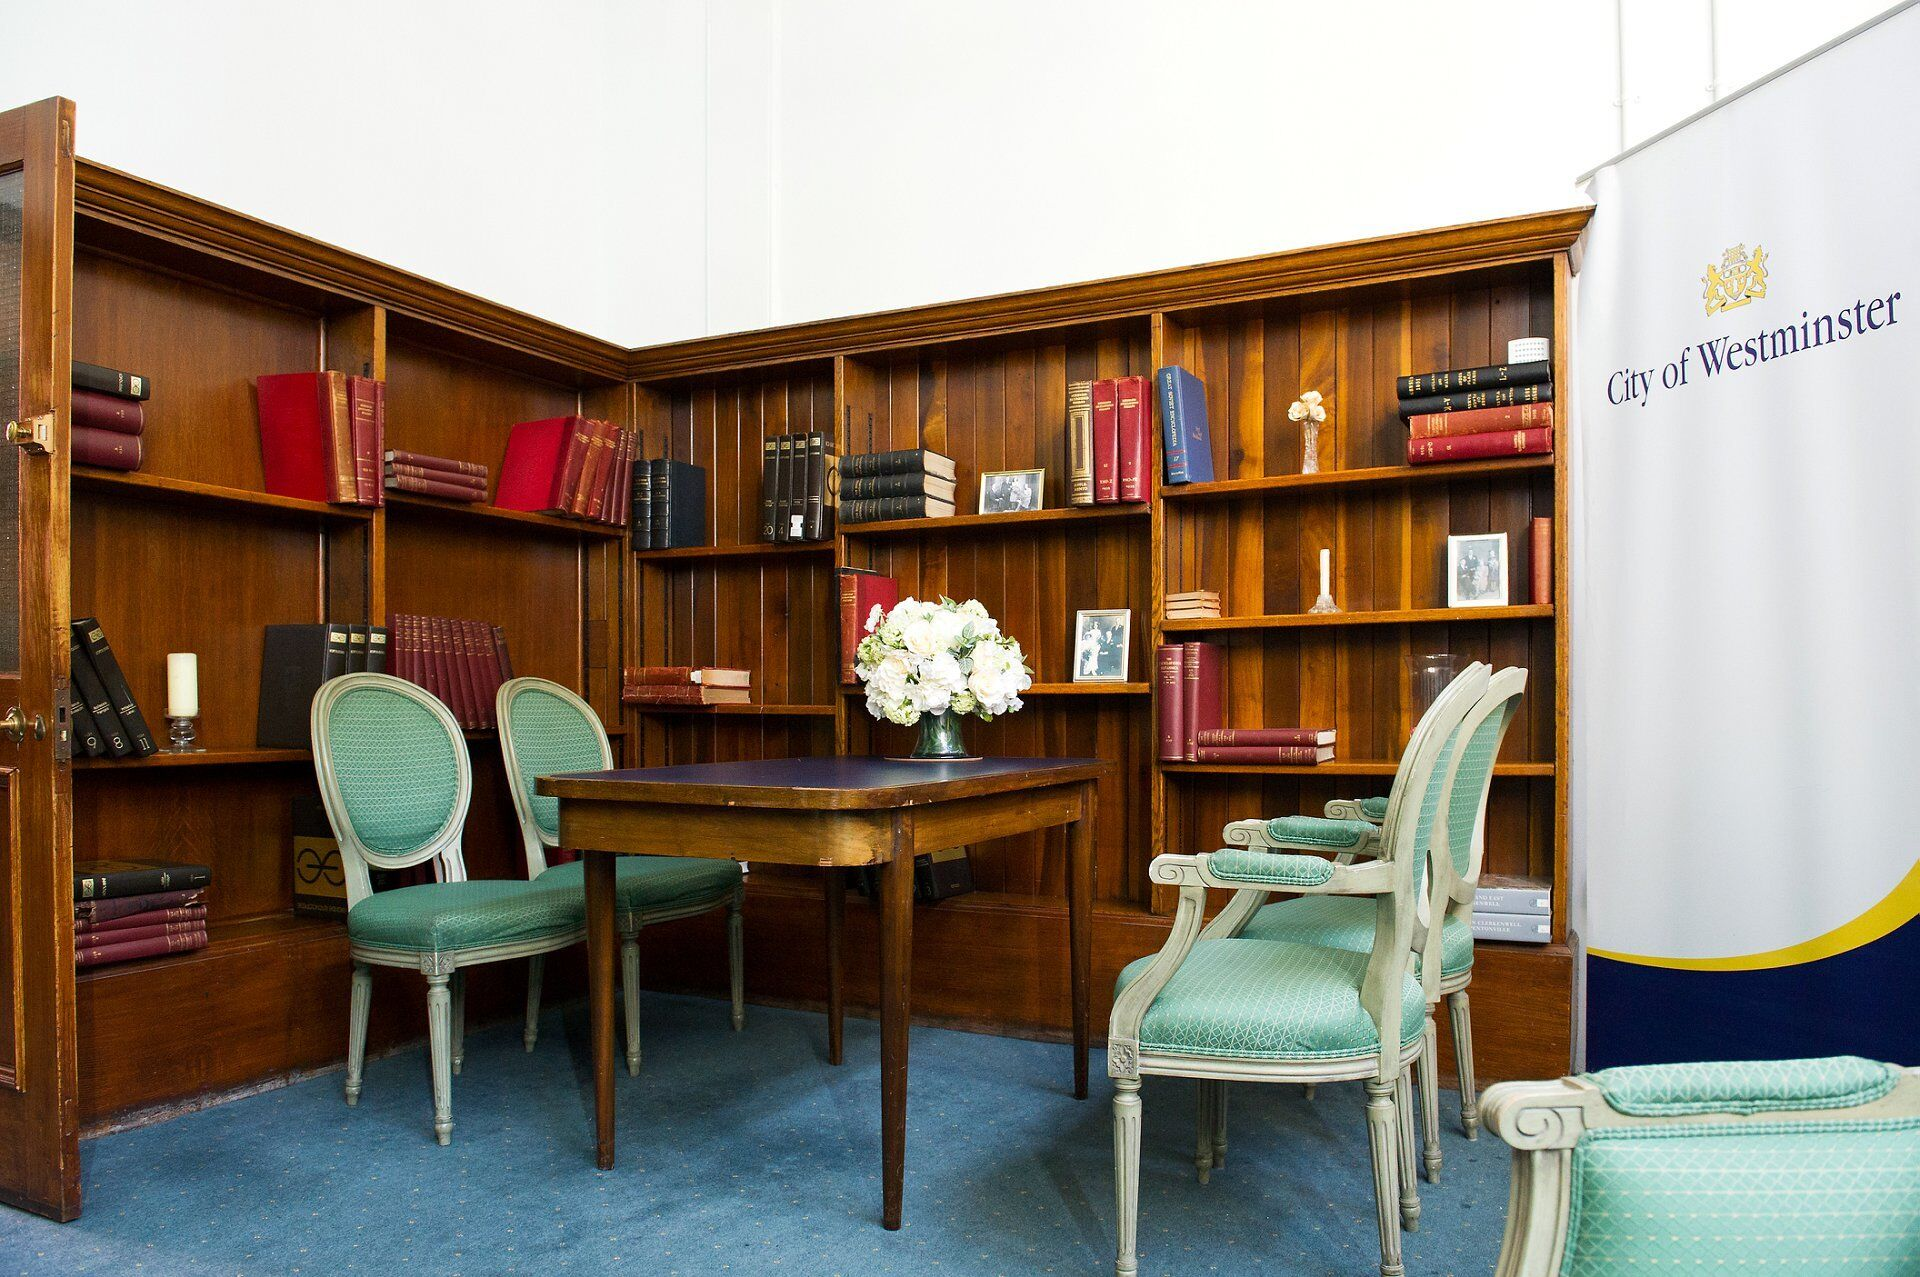 Elizabeth Barrett pre ceremony interview room at mayfair library for brides and grooms marrying at westminster register office